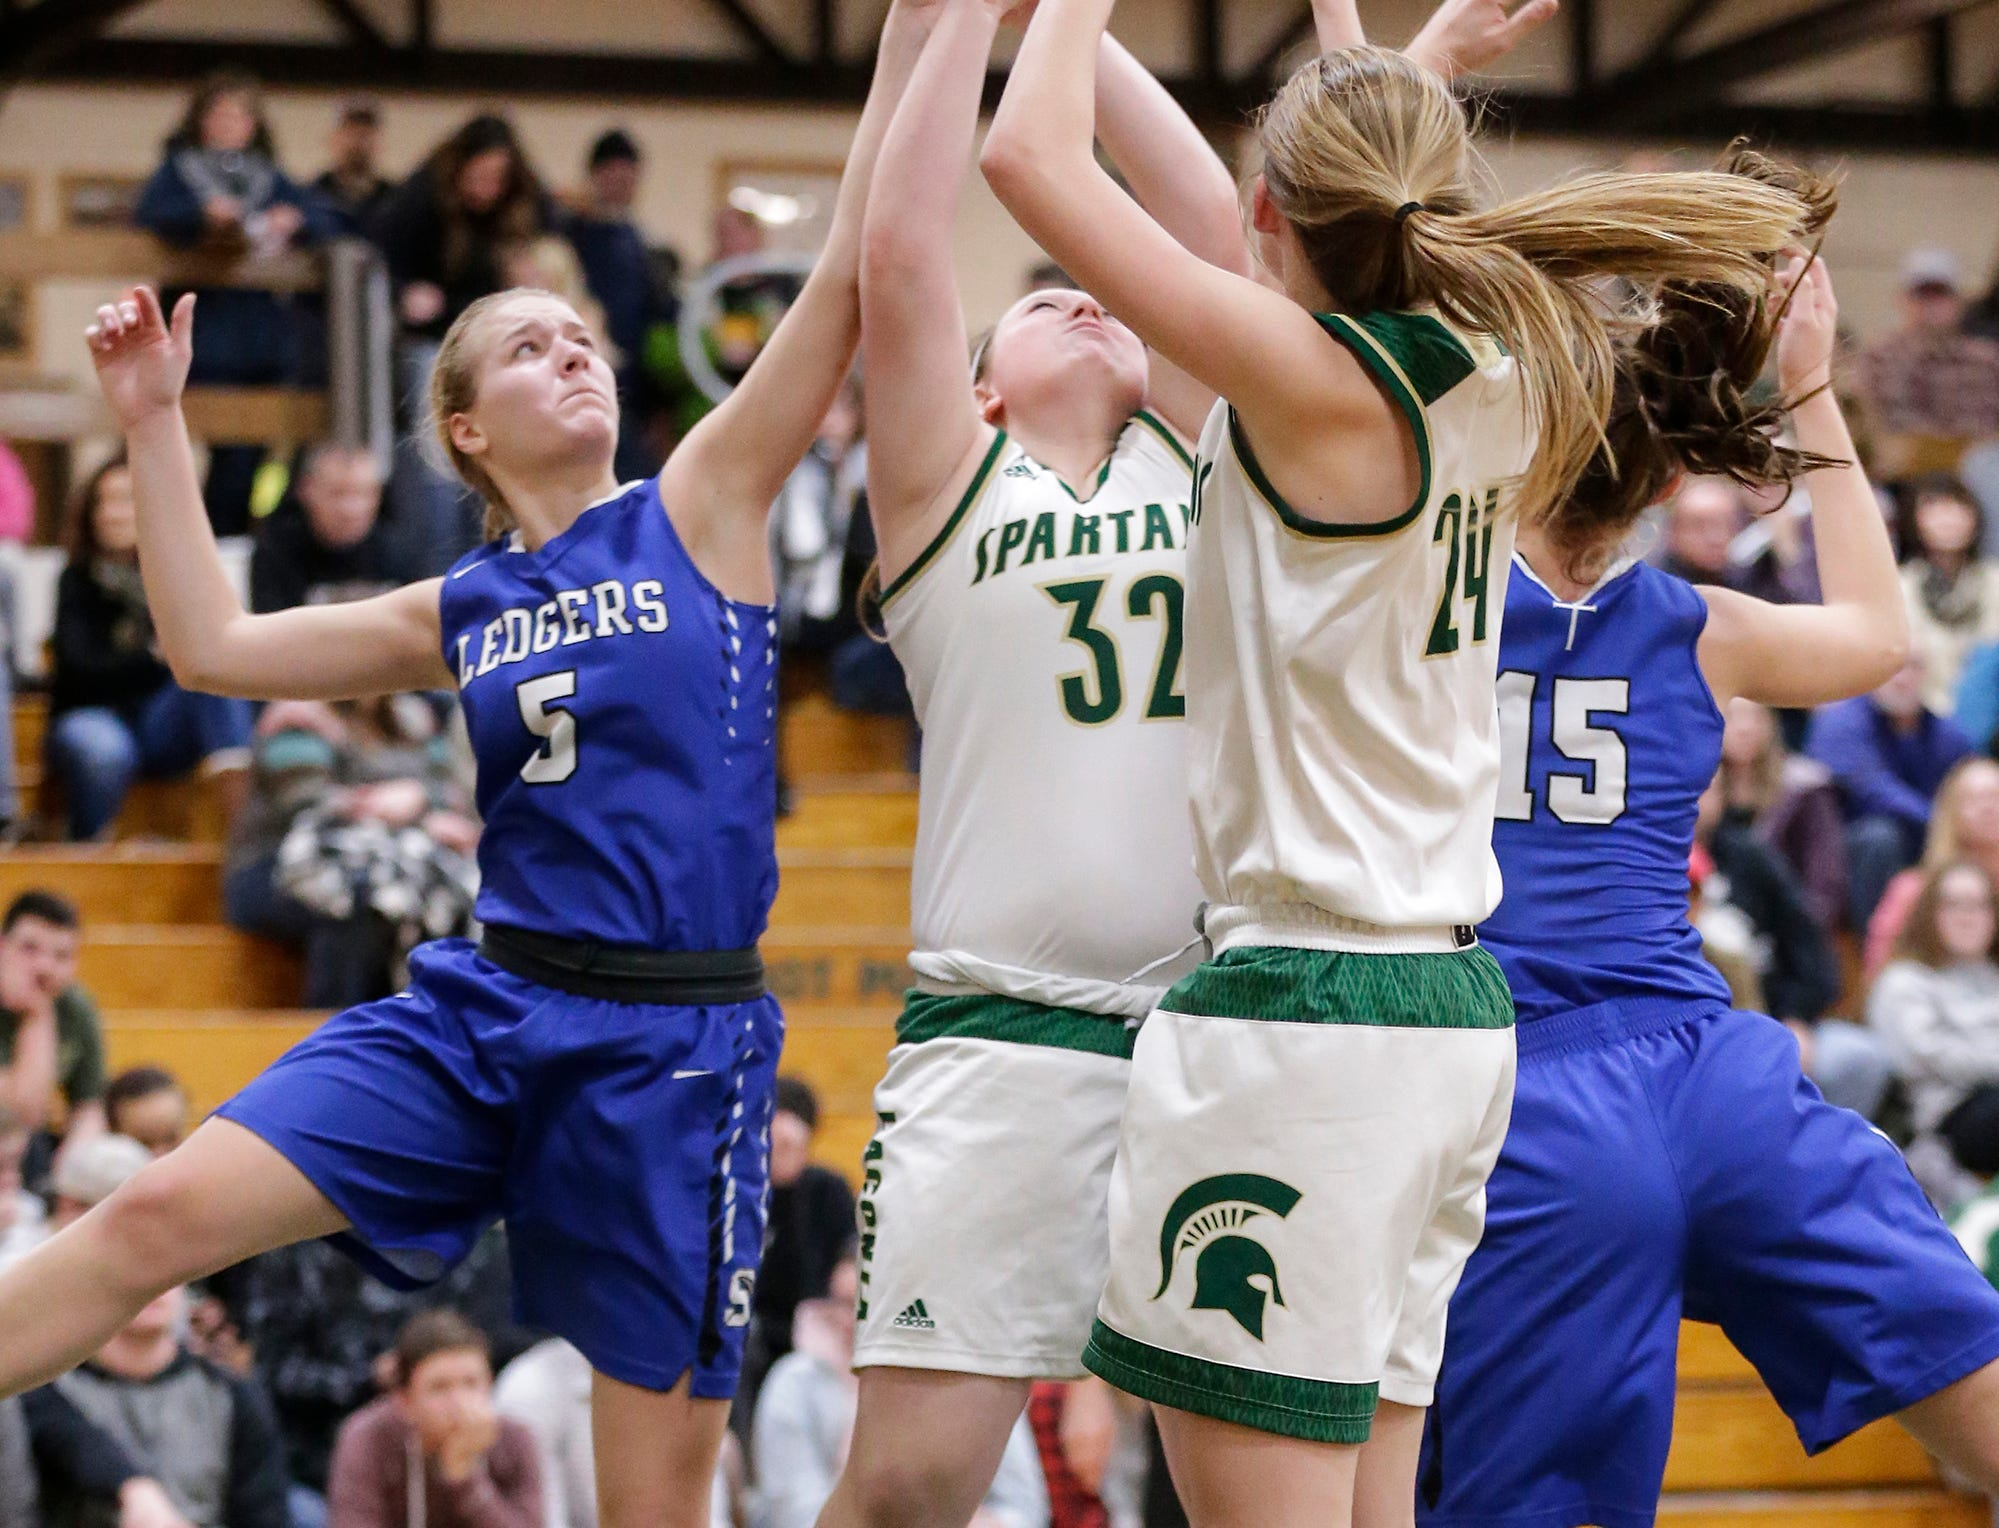 Laconia High School girls basketball's Abby Luczak (32) and Maci Grade (24) battle for a rebound with St. Mary's Springs Academy's Gracie Rieder (5) and Maddie Gehring (15) Tuesday, January 15, 2019 during their game in Rosendale. Laconia won the game 57-45. Doug Raflik/USA TODAY NETWORK-Wisconsin